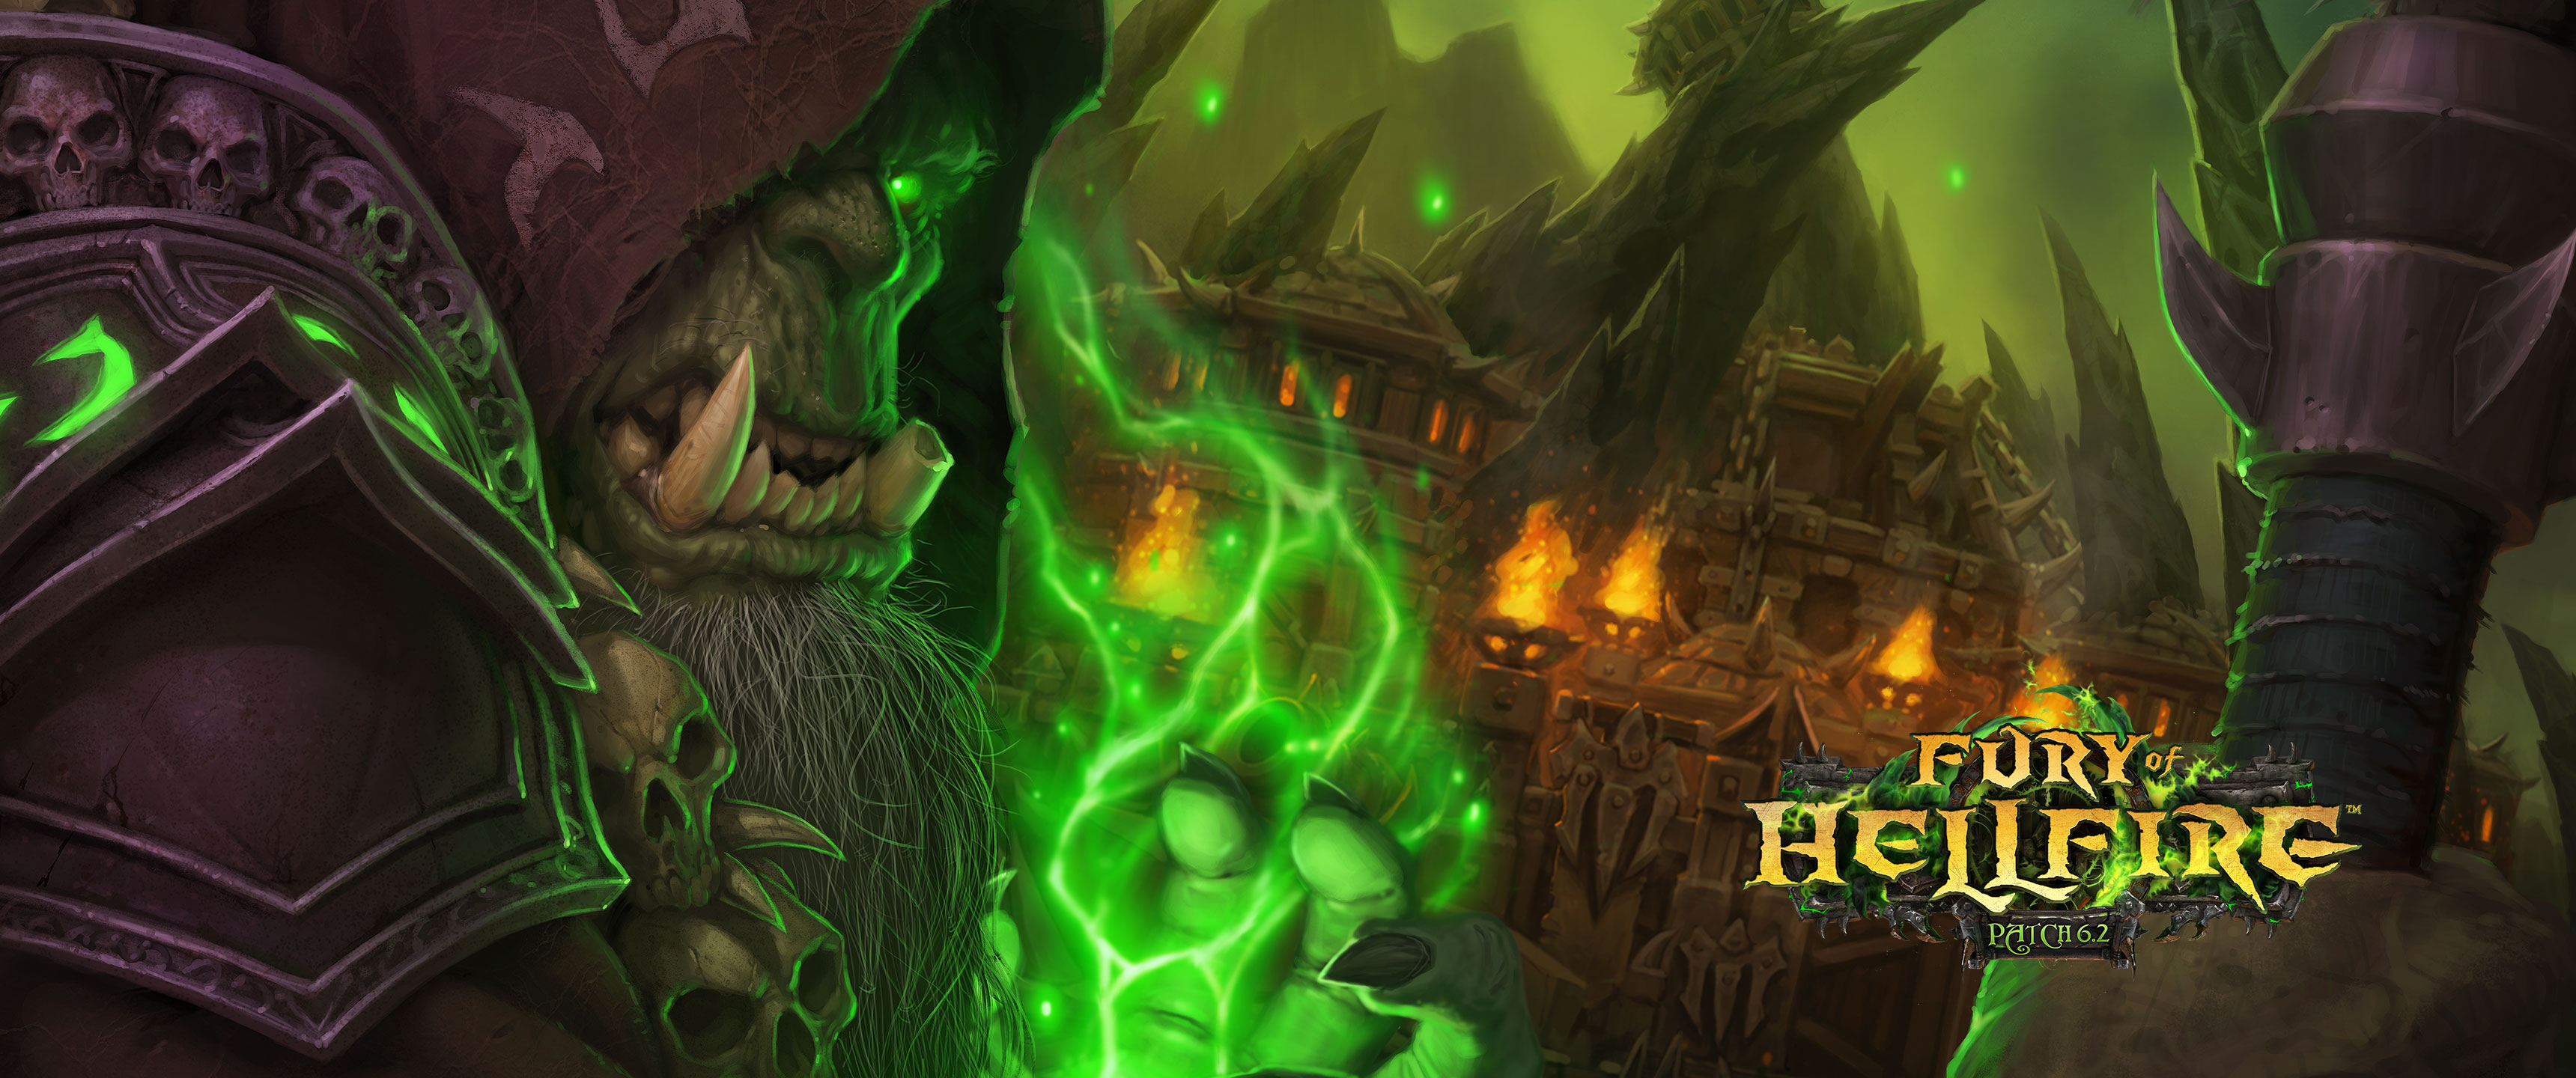 Patch 62 Fury of Hellfire Wallpapers Available   World of Warcraft 3440x1440